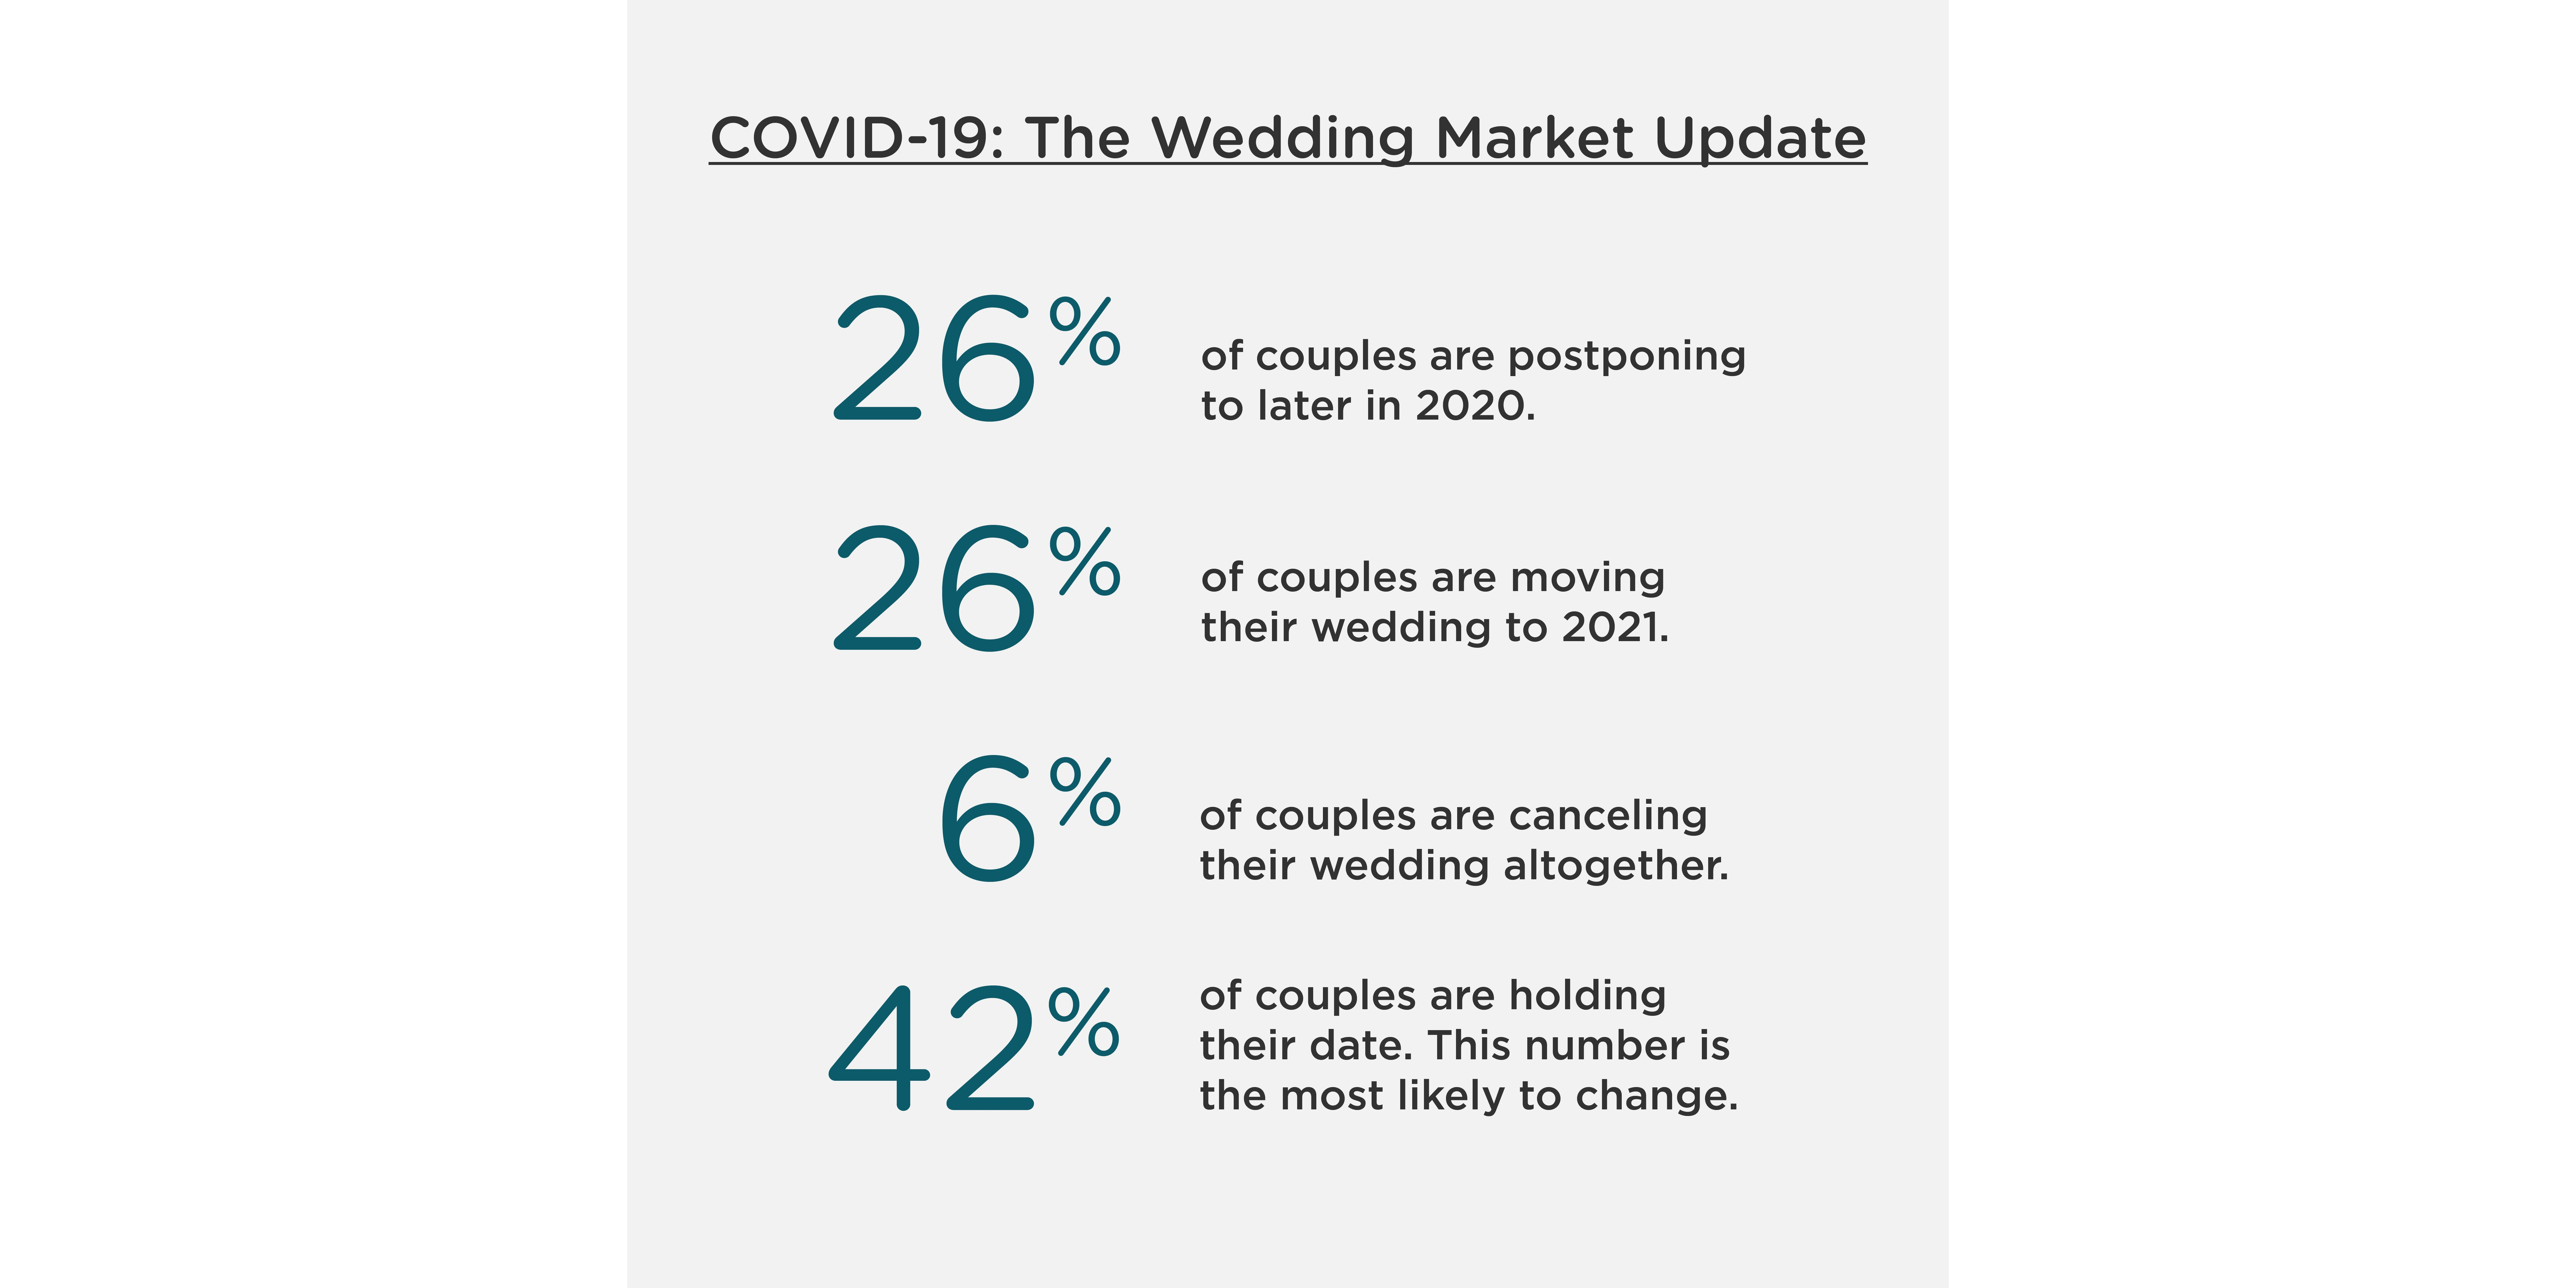 Over 50% of weddings have been postponed in the wake of COVID-19